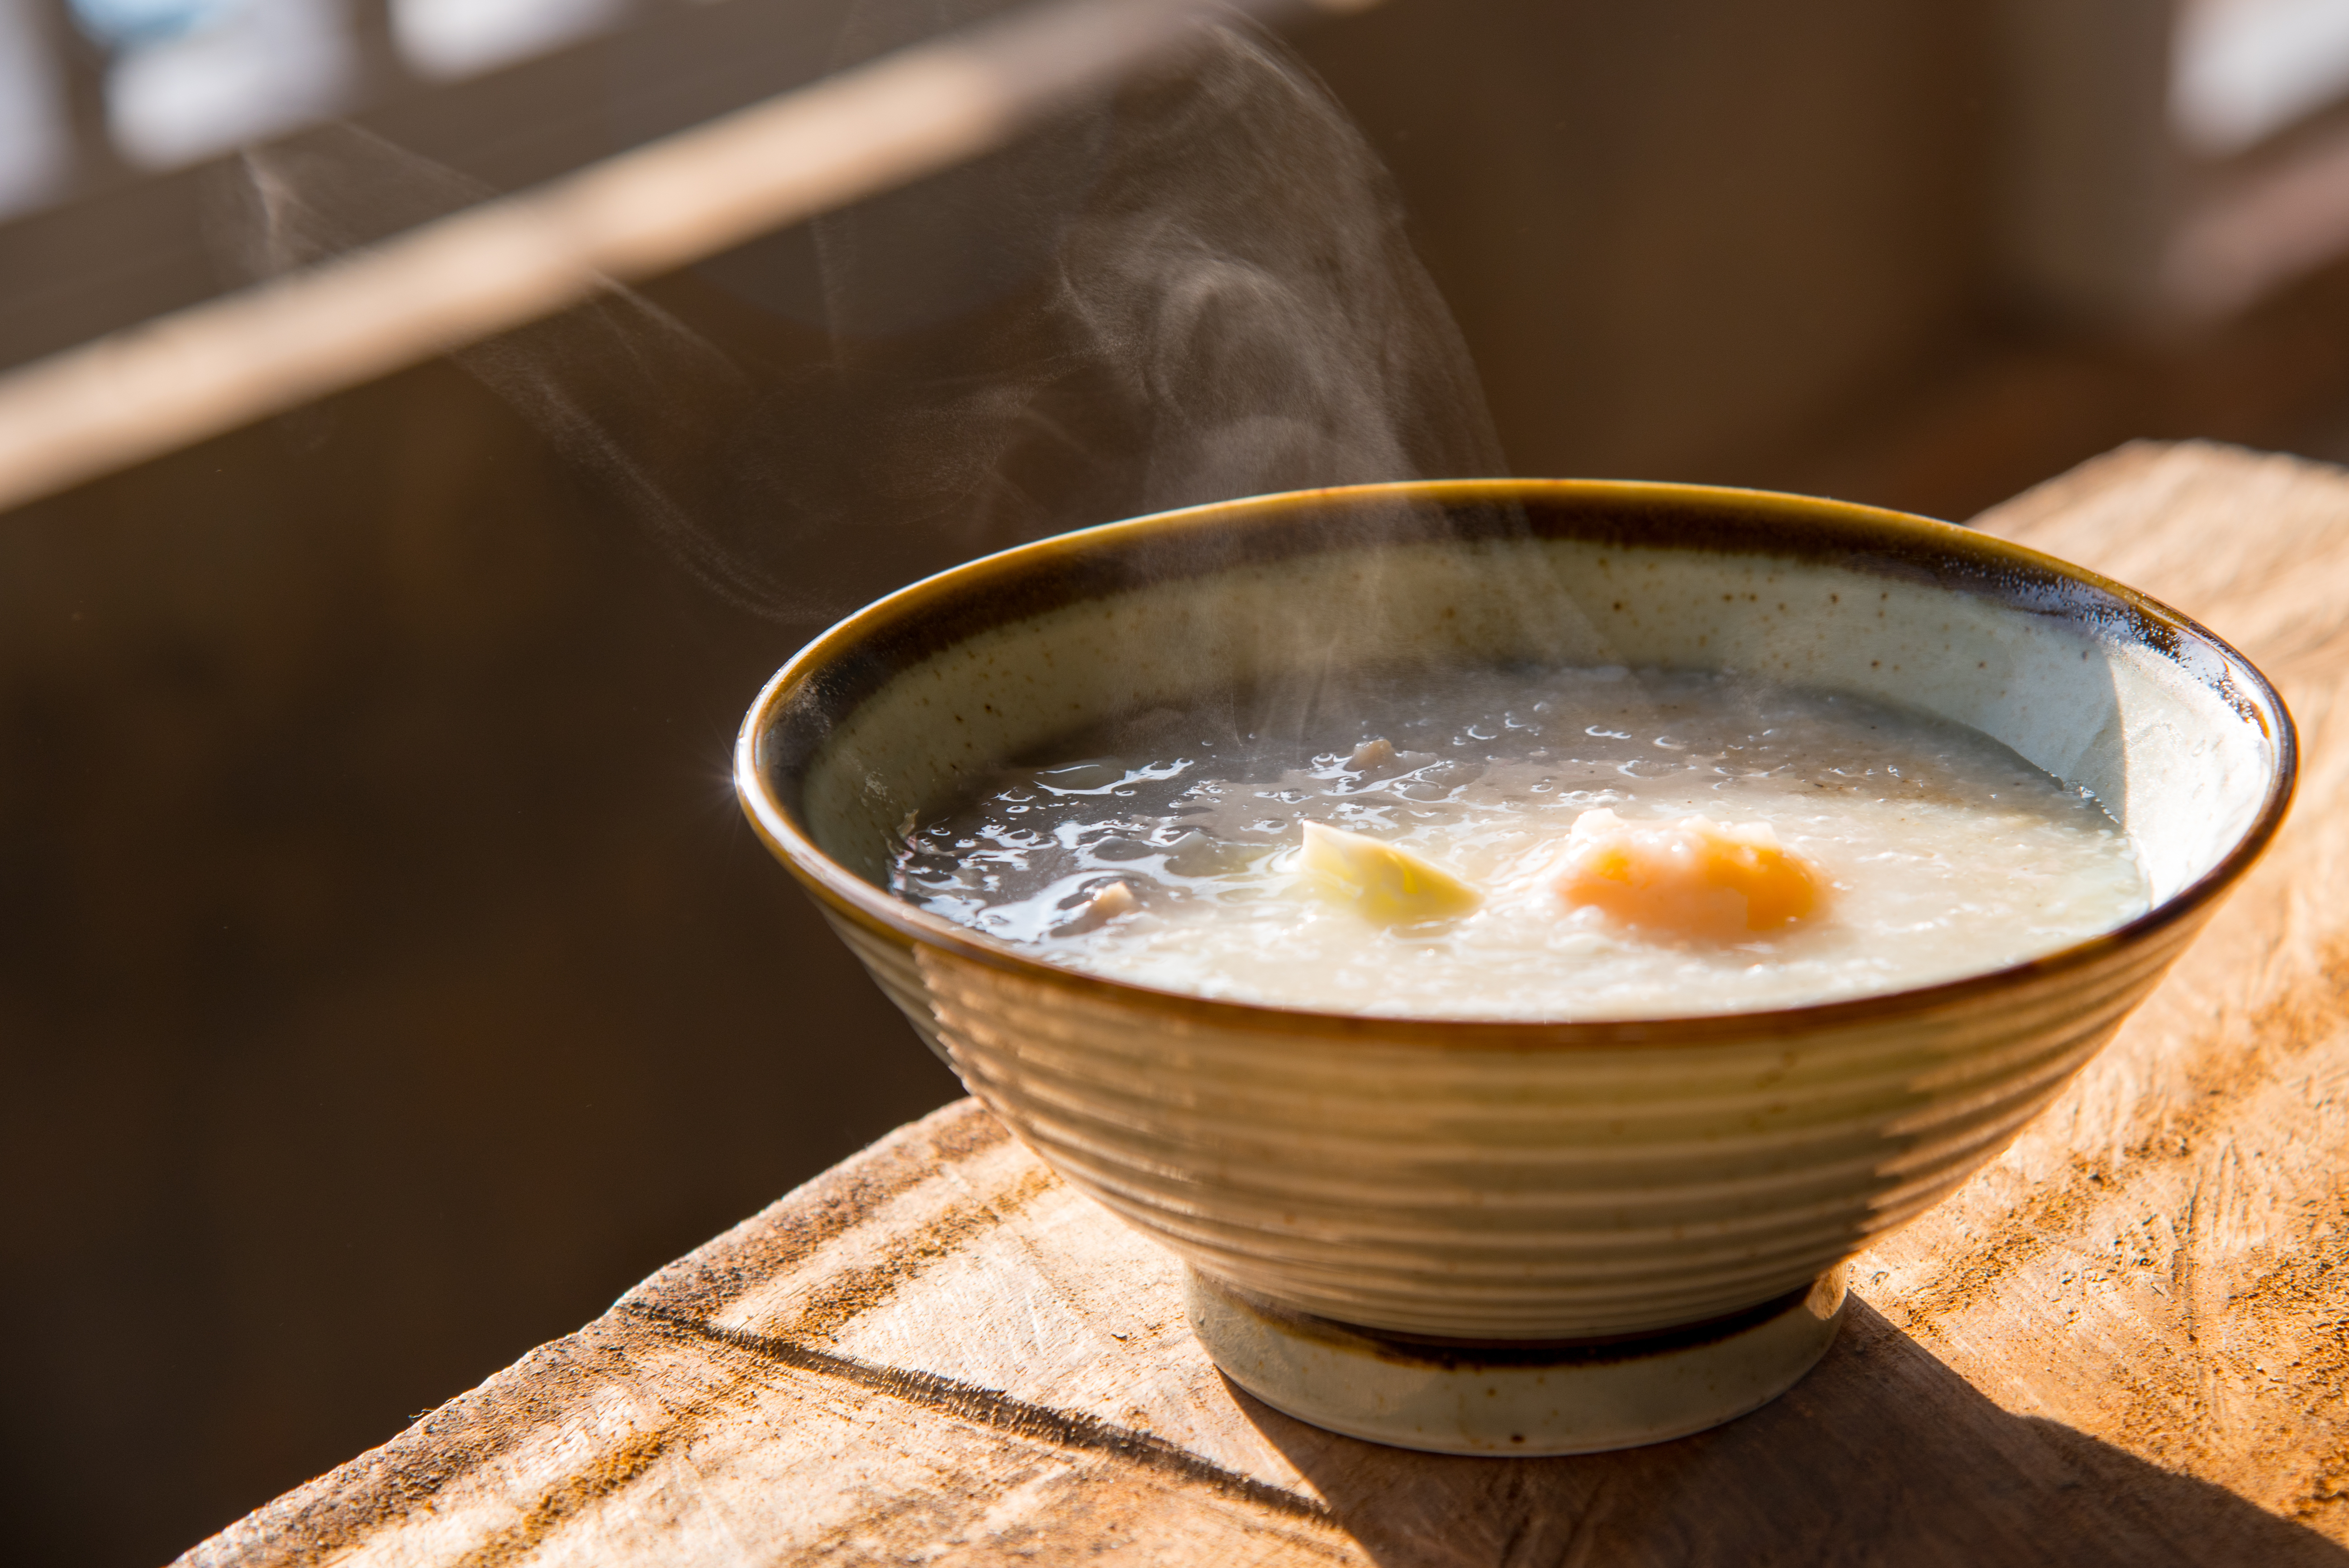 Steam rises off of beige congee served in a ceramic bowl on a light wood table.